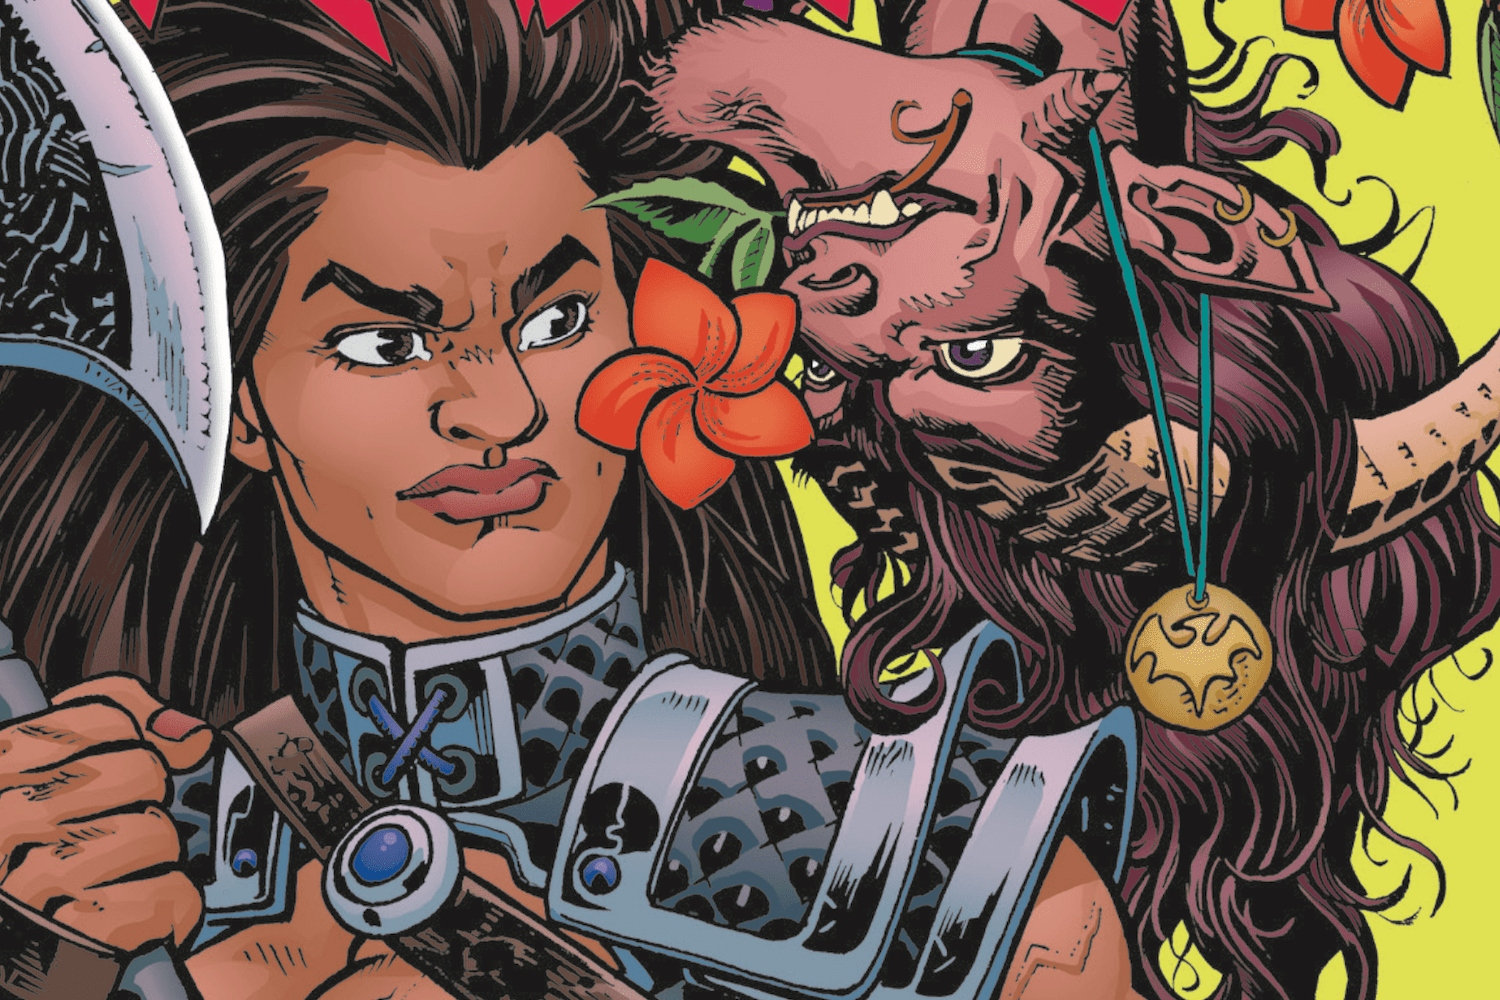 Experiencing the sensation of 'Savage Hearts' with creators Jed Dougherty and Aubrey Sitterson